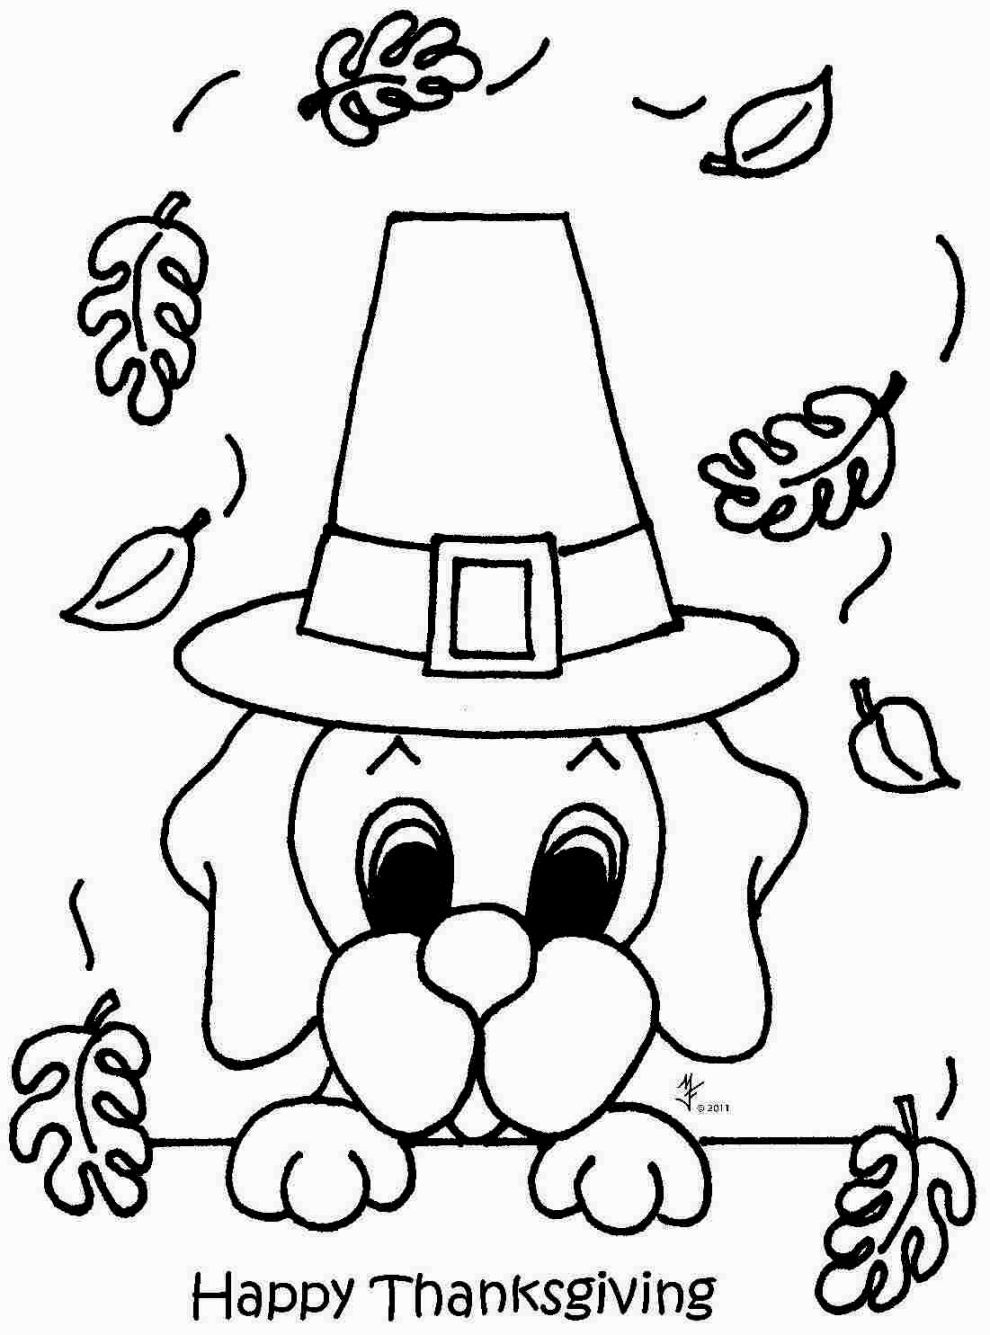 Pilgrim Coloring Pages Turkey With Pilgrim Hat Coloring Pages